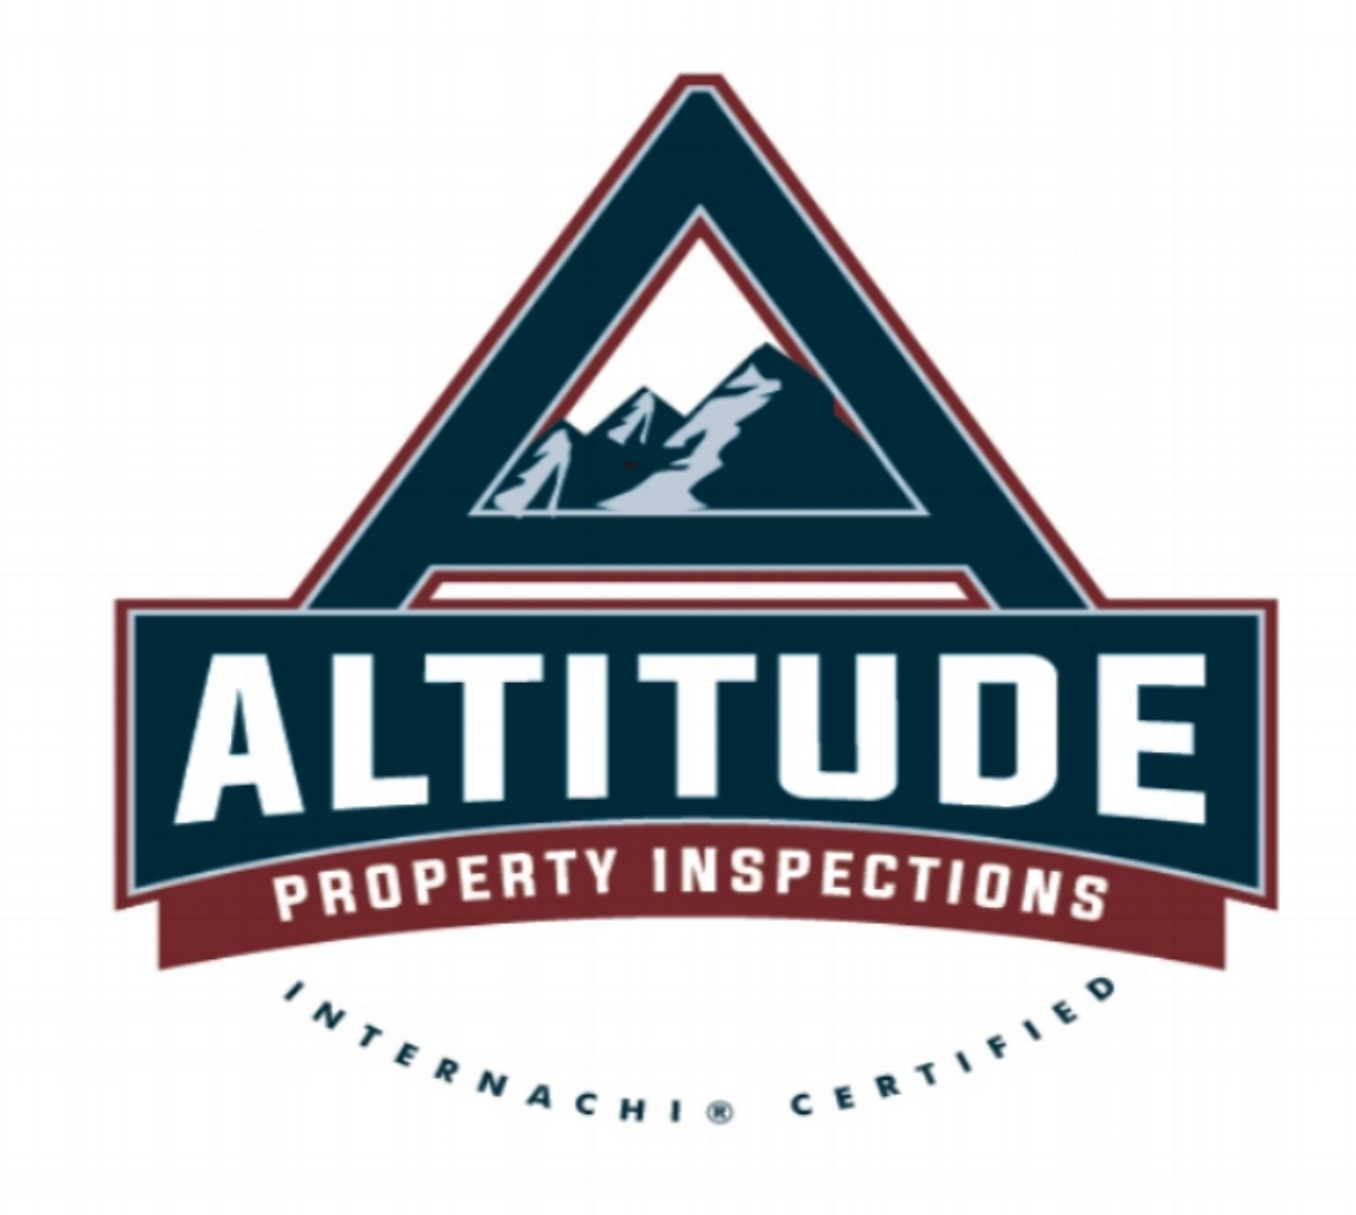 Altitude Property Inspections, LLC